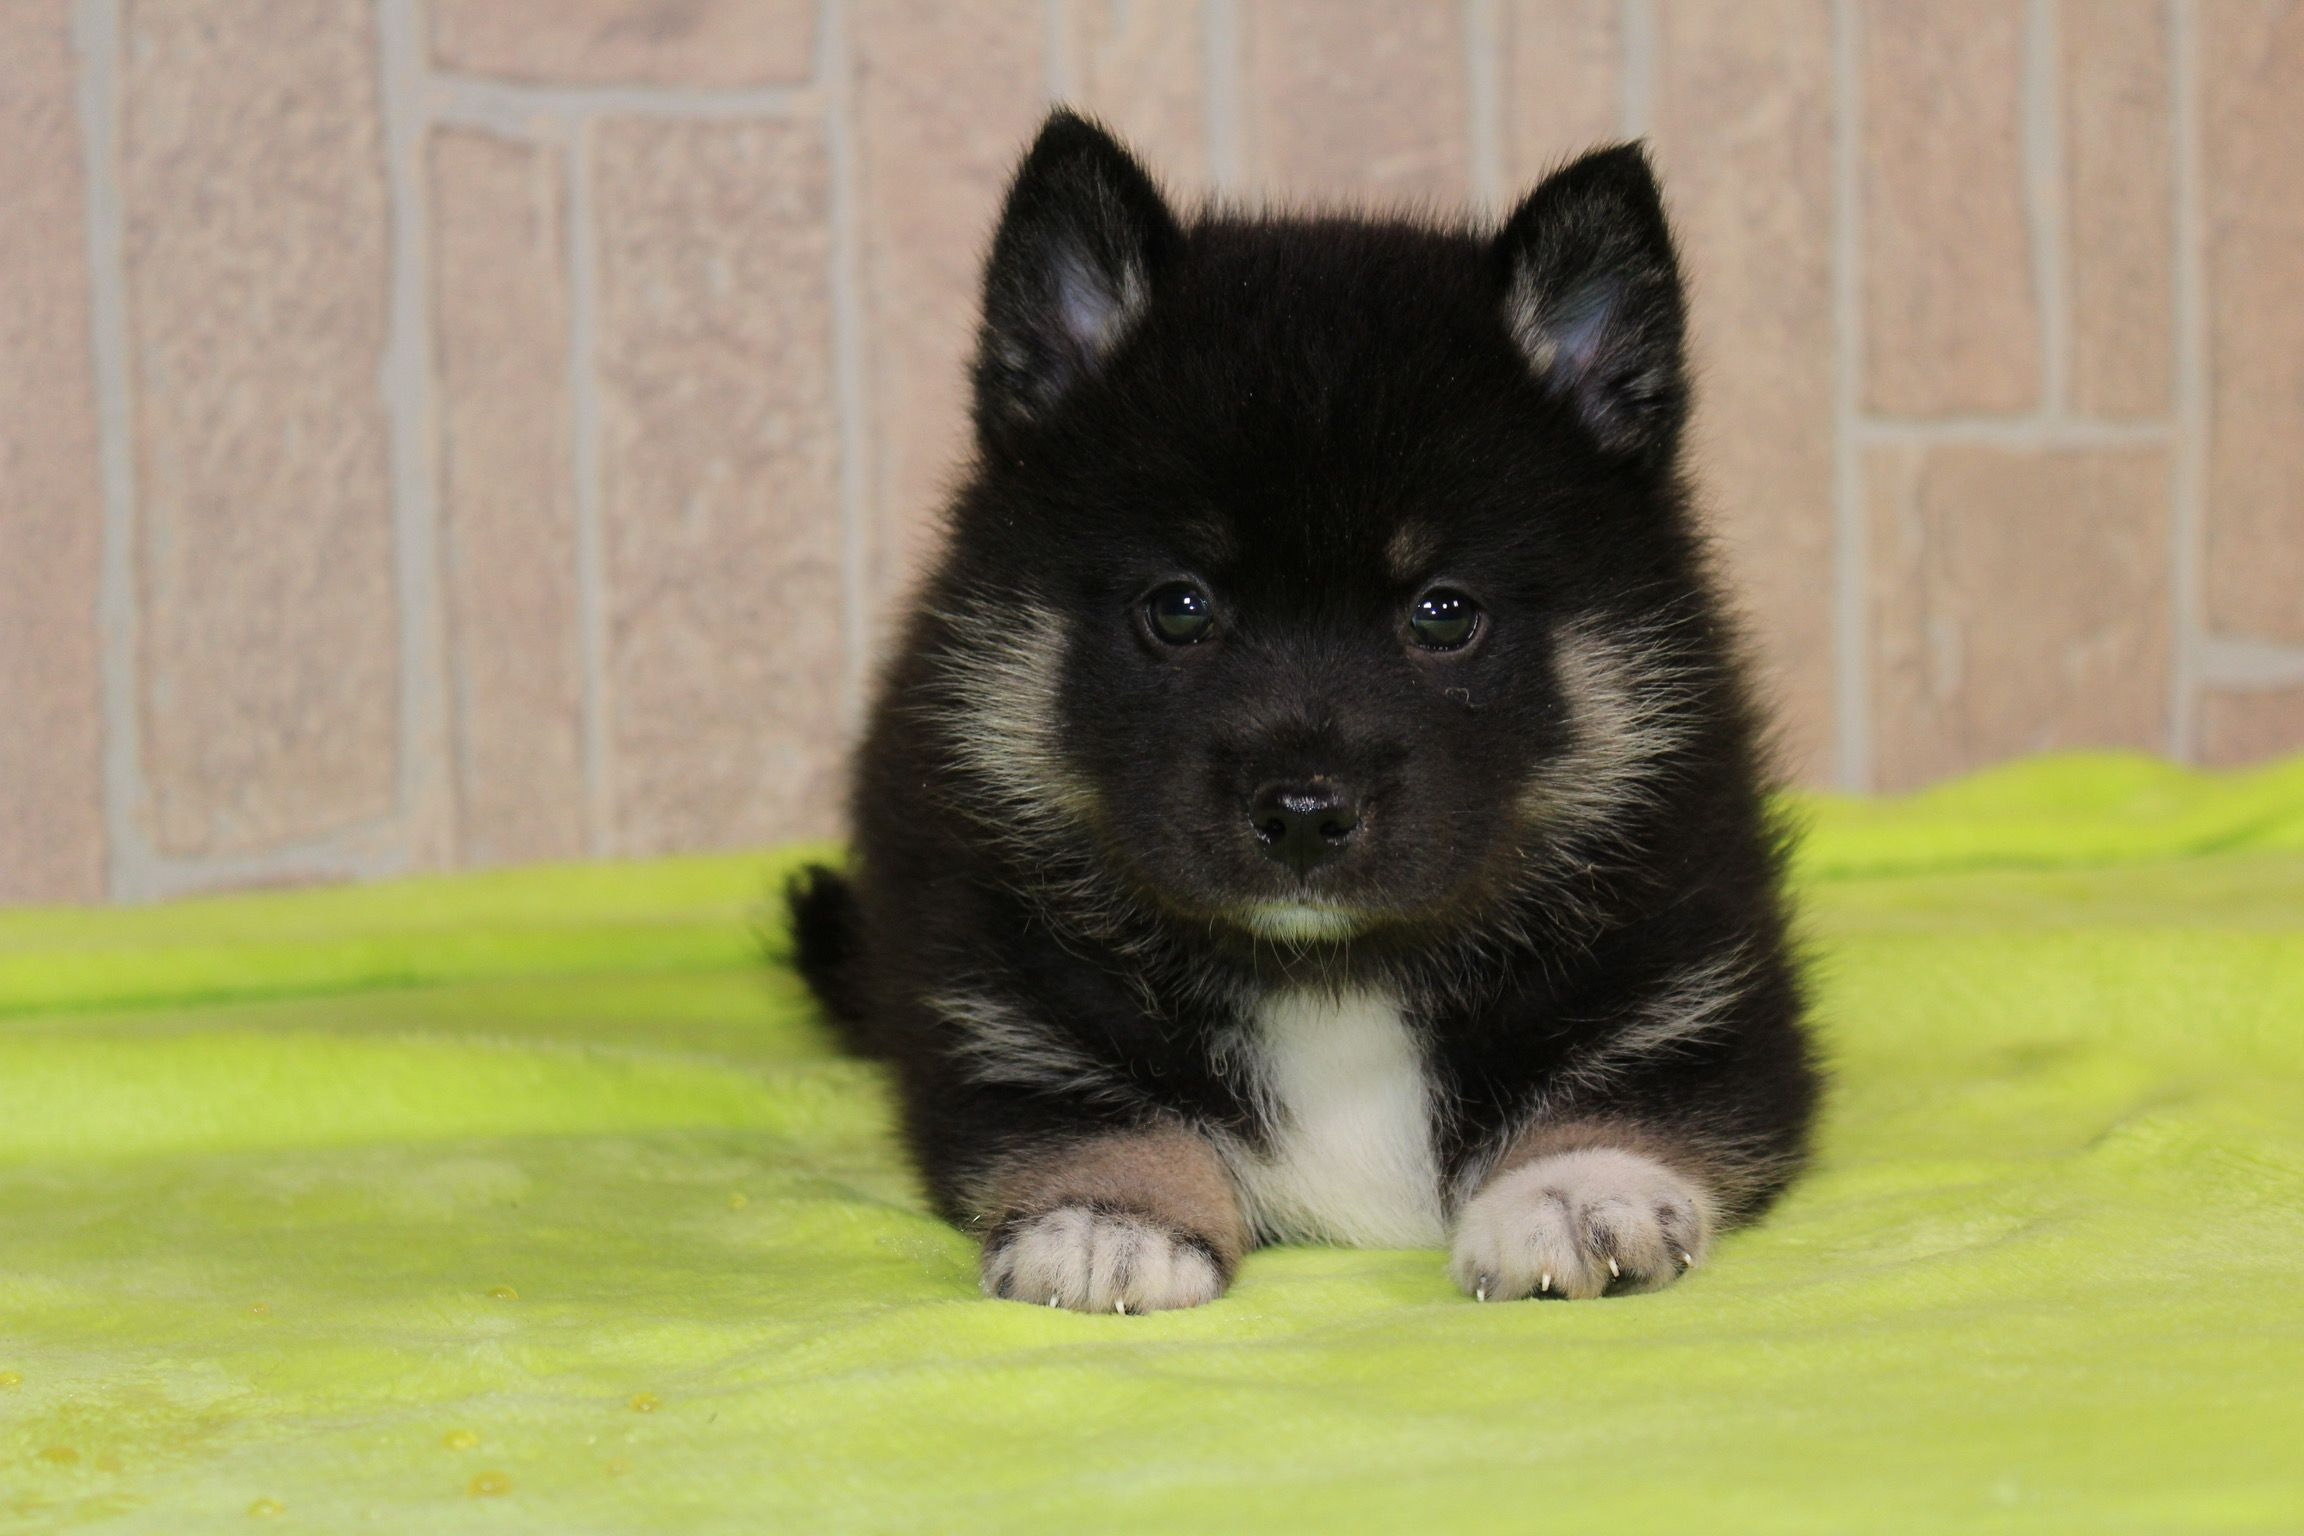 Gio A Spunky Male Ckc Pomsky Pupper In Indiana For Sale With Health Guarantee Find Cute Pomsky Puppies And Responsib Pomsky Puppies Puppies Puppies For Sale